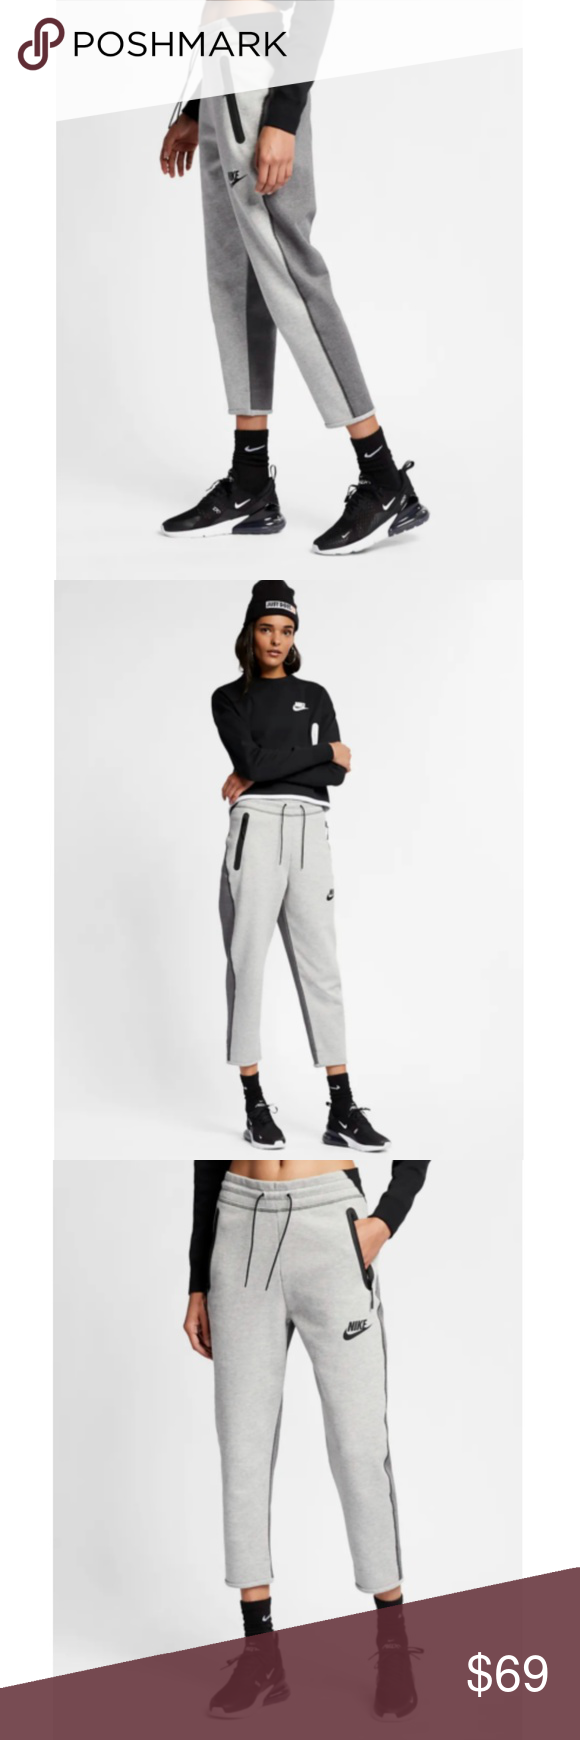 Nike Sportswear Tech Fleece Women's Pants New With Tags